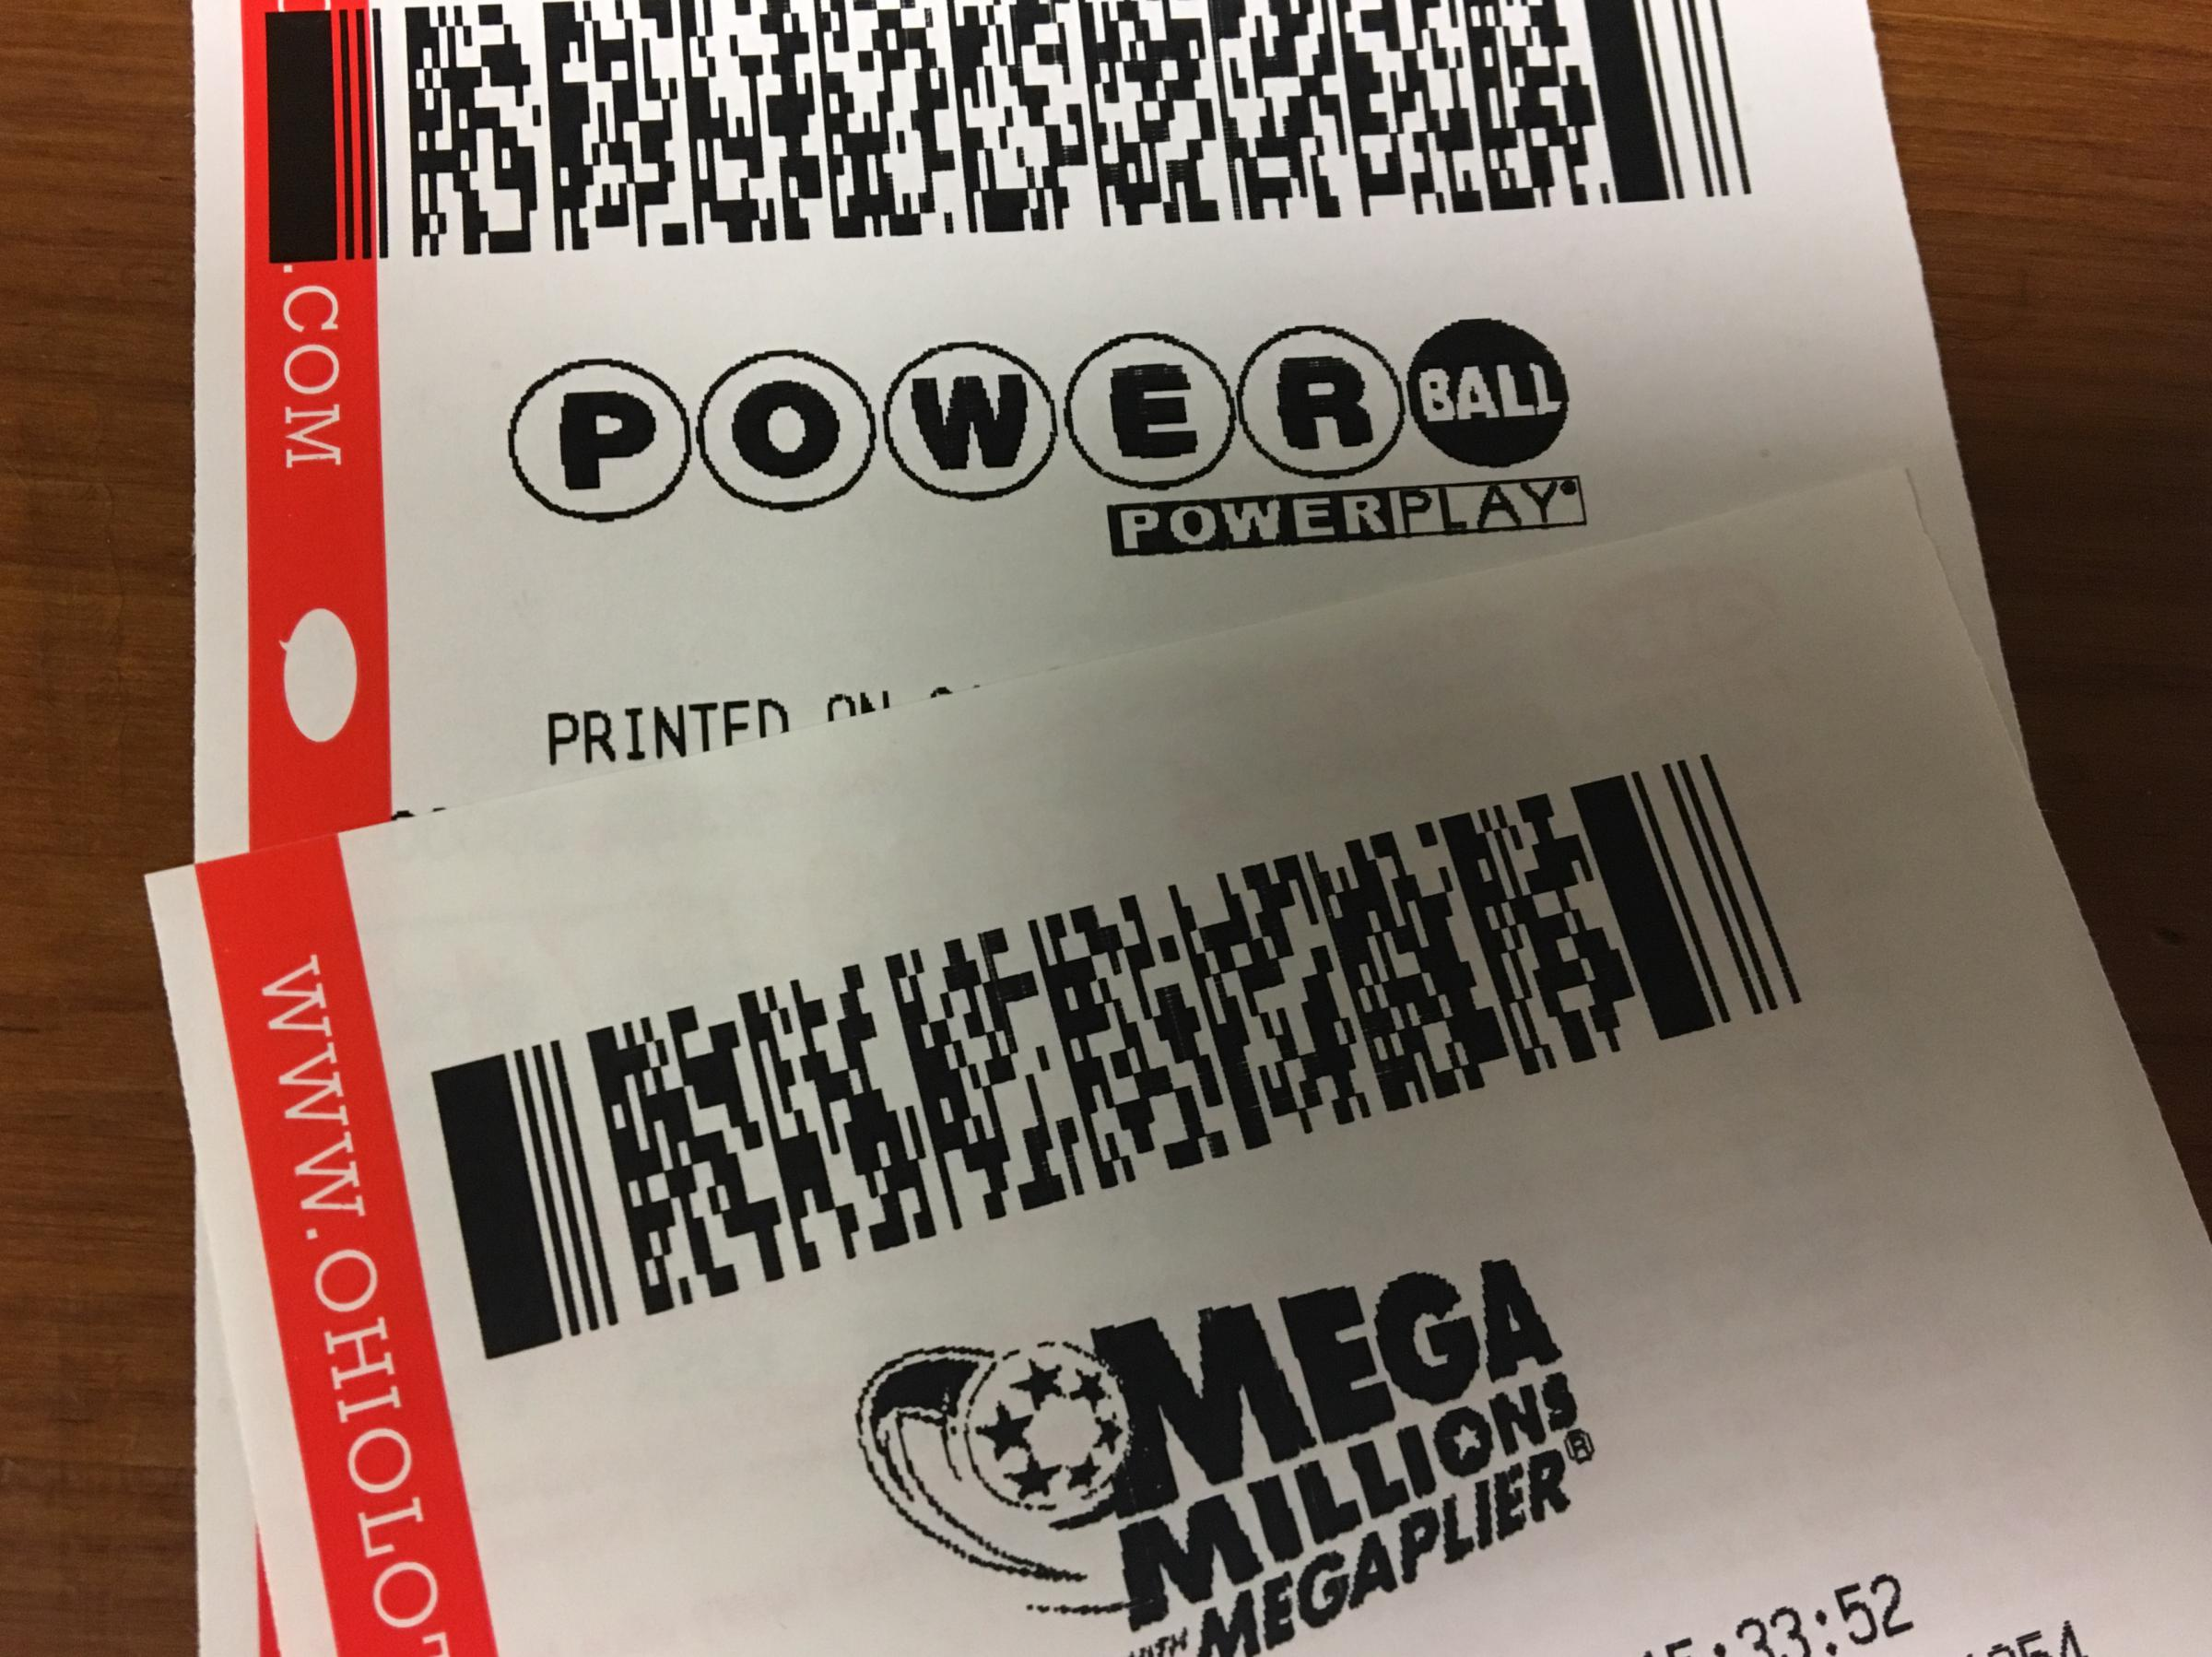 Mega Millions jackpot victor  in Florida, but Powerball at $570M